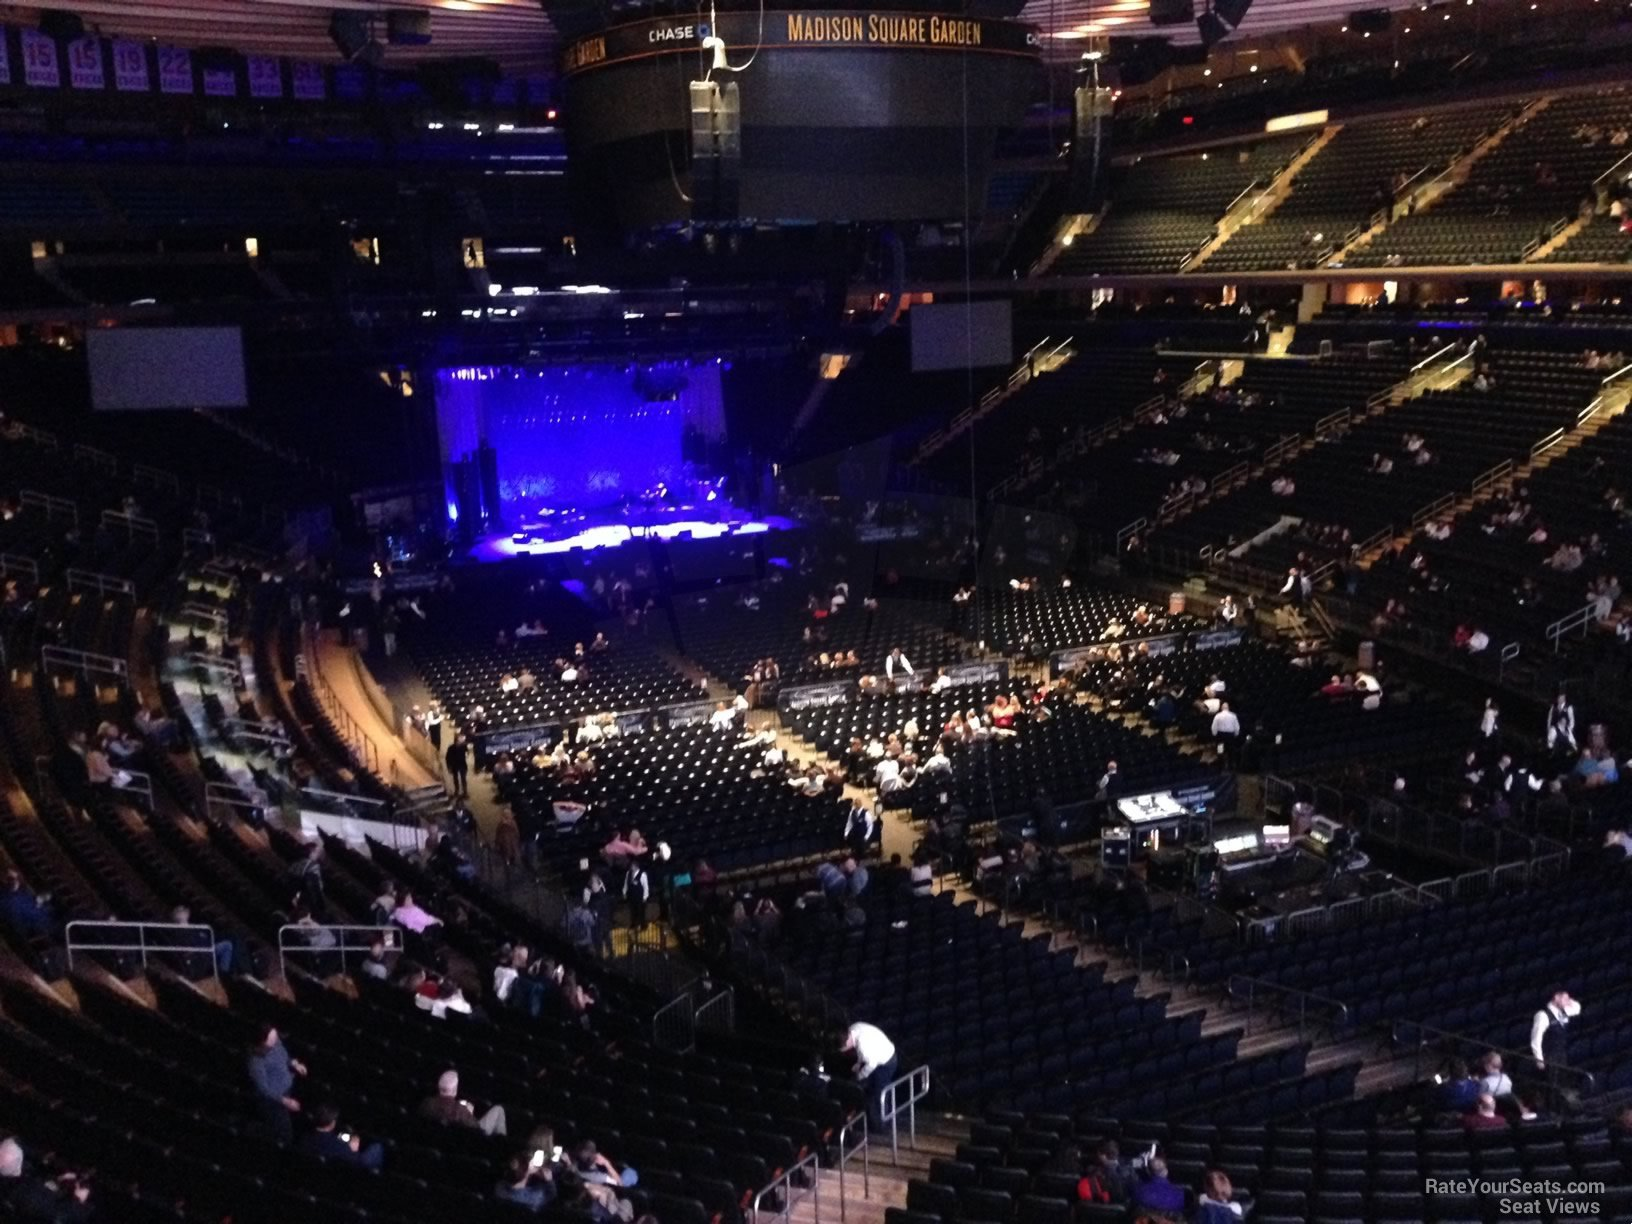 Douglaslucascom Rammstein Concert At Madison Square Garden Rammgut Billy Joel Breaks Madison